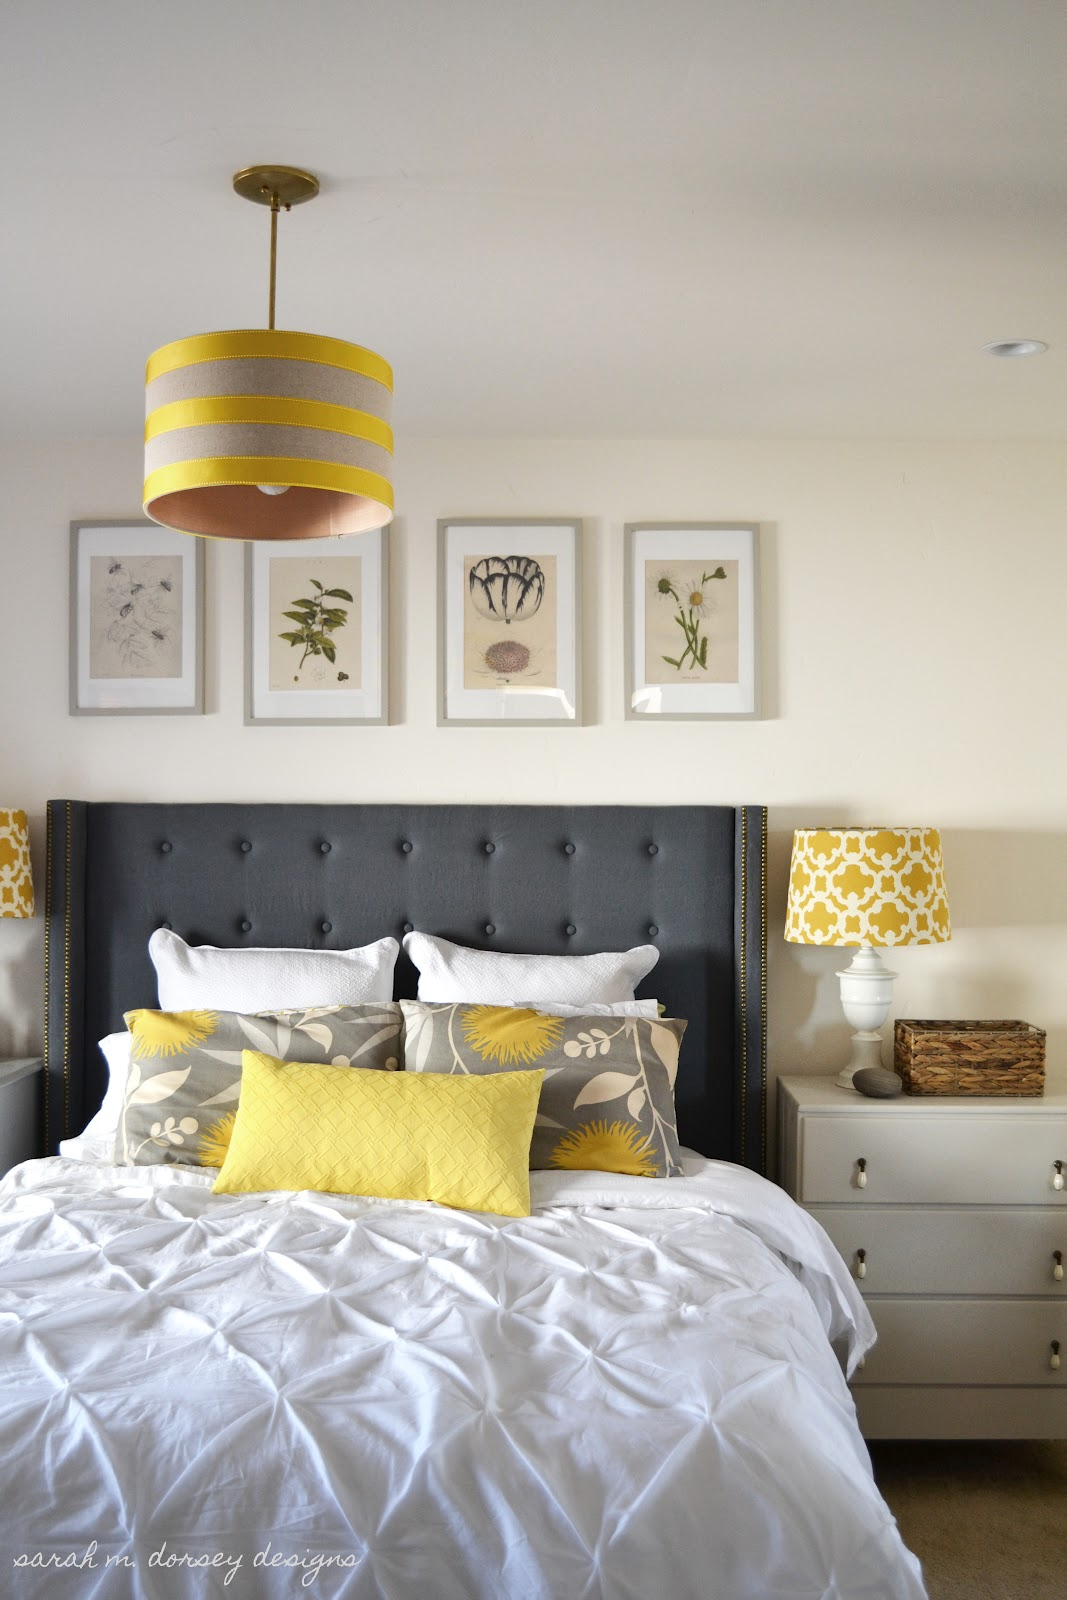 yellow and gray bedroom ideas m dorsey designs for above the headboard take 1 20170